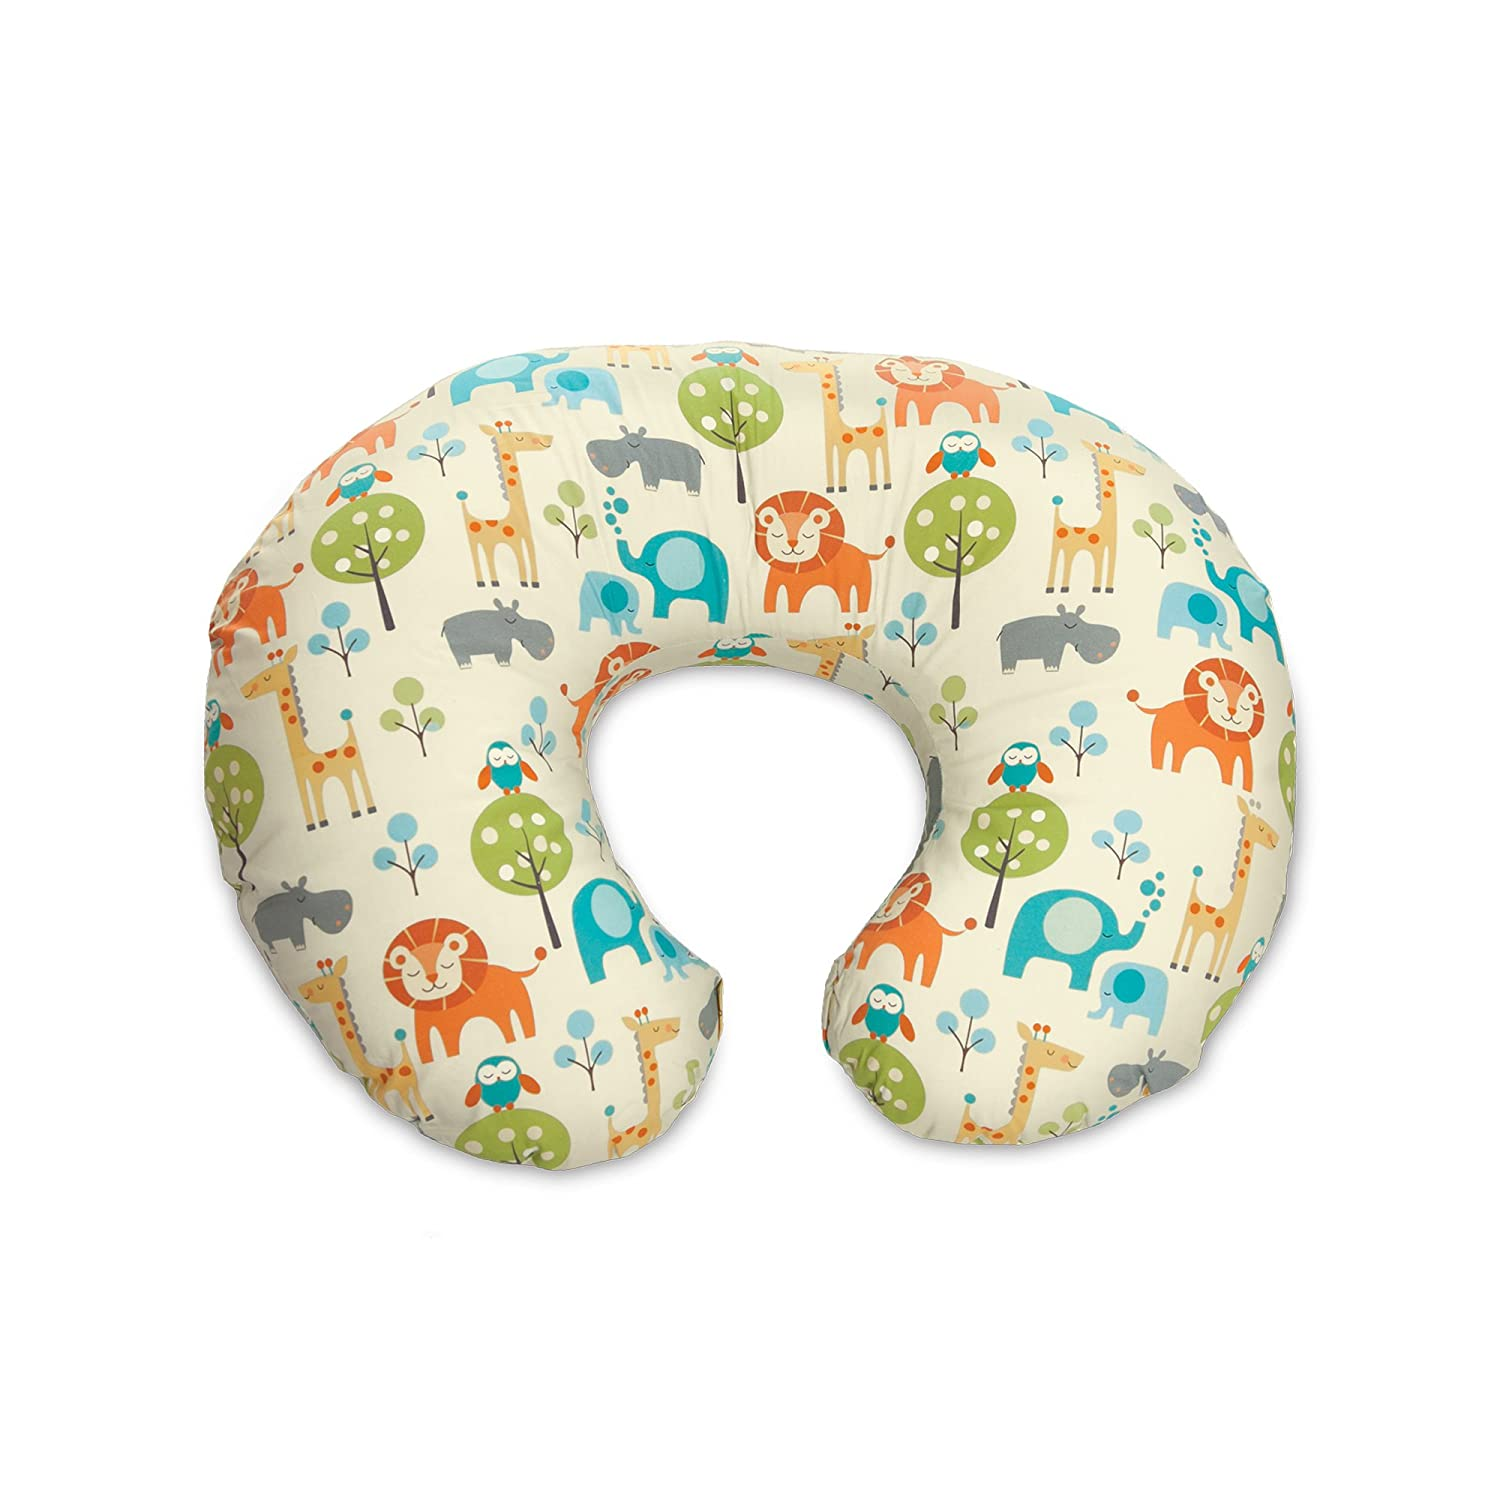 Boppy Nursing Pillow and Positioner, Peaceful Jungle 2200160K 2PK